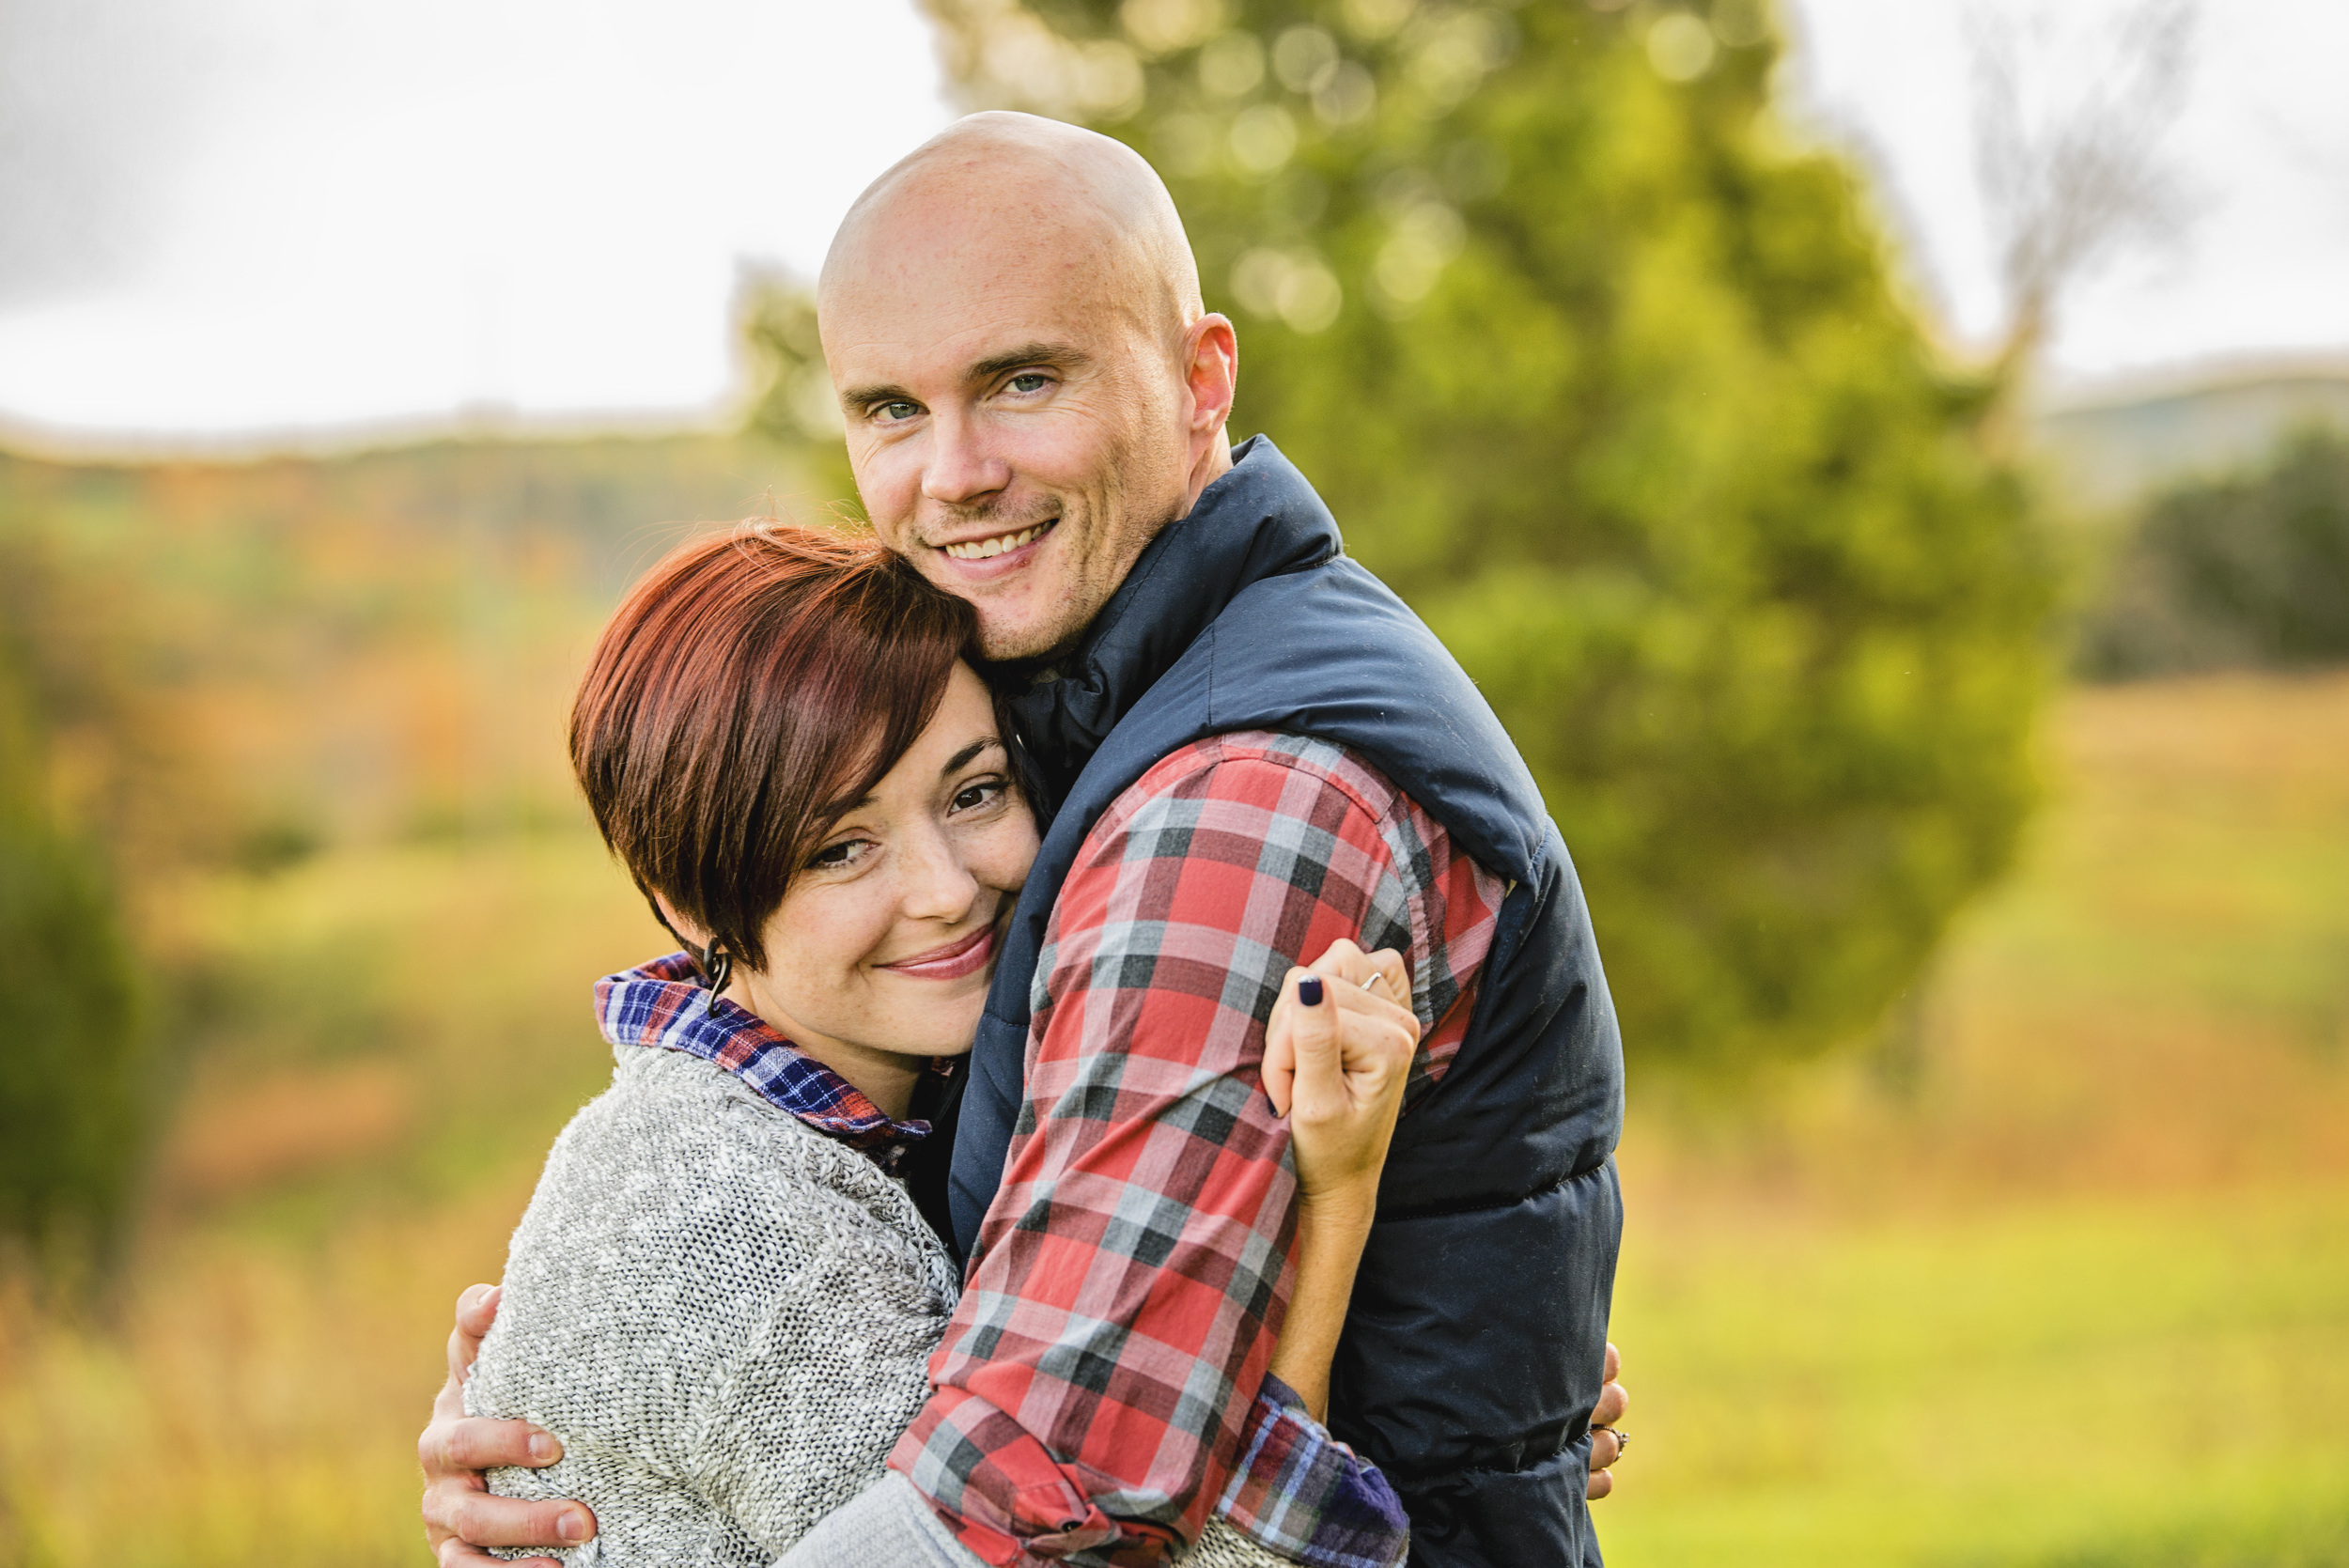 romantic_fall_field_engagement_session_lynchburg_va000.jpg